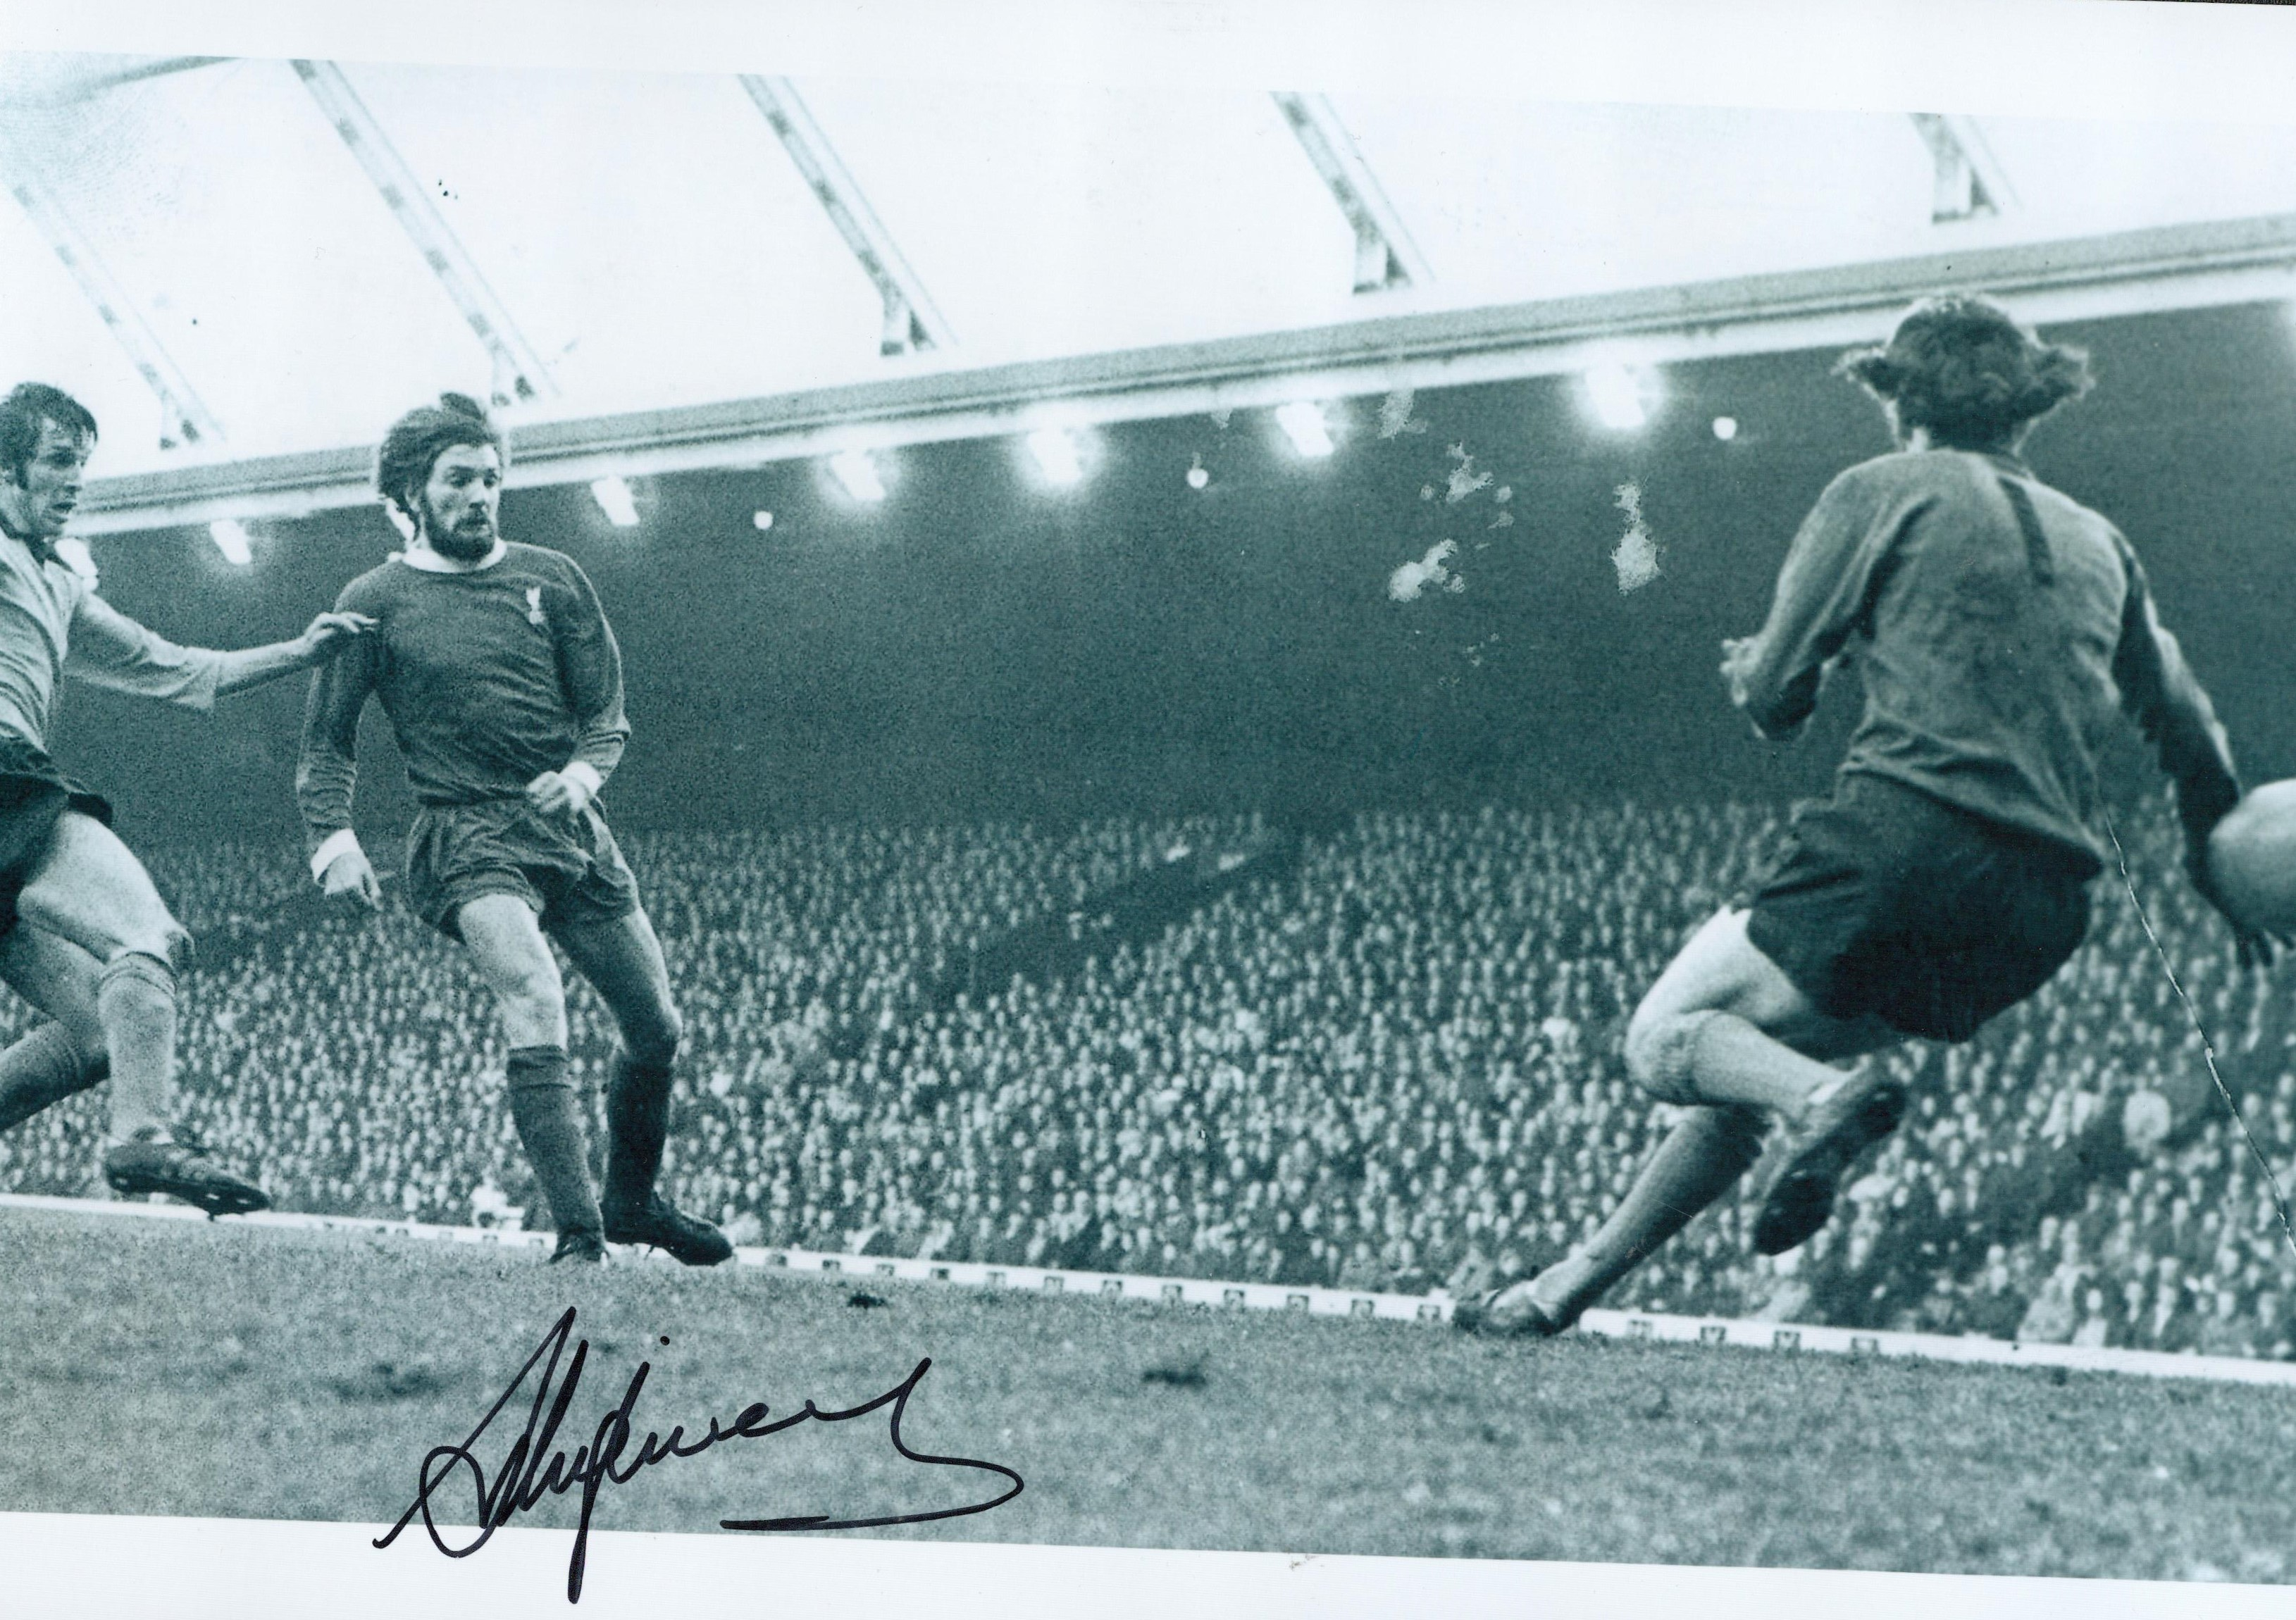 Football Steve Heighway signed 12x8 black and white photo pictured in action for Liverpool. Good